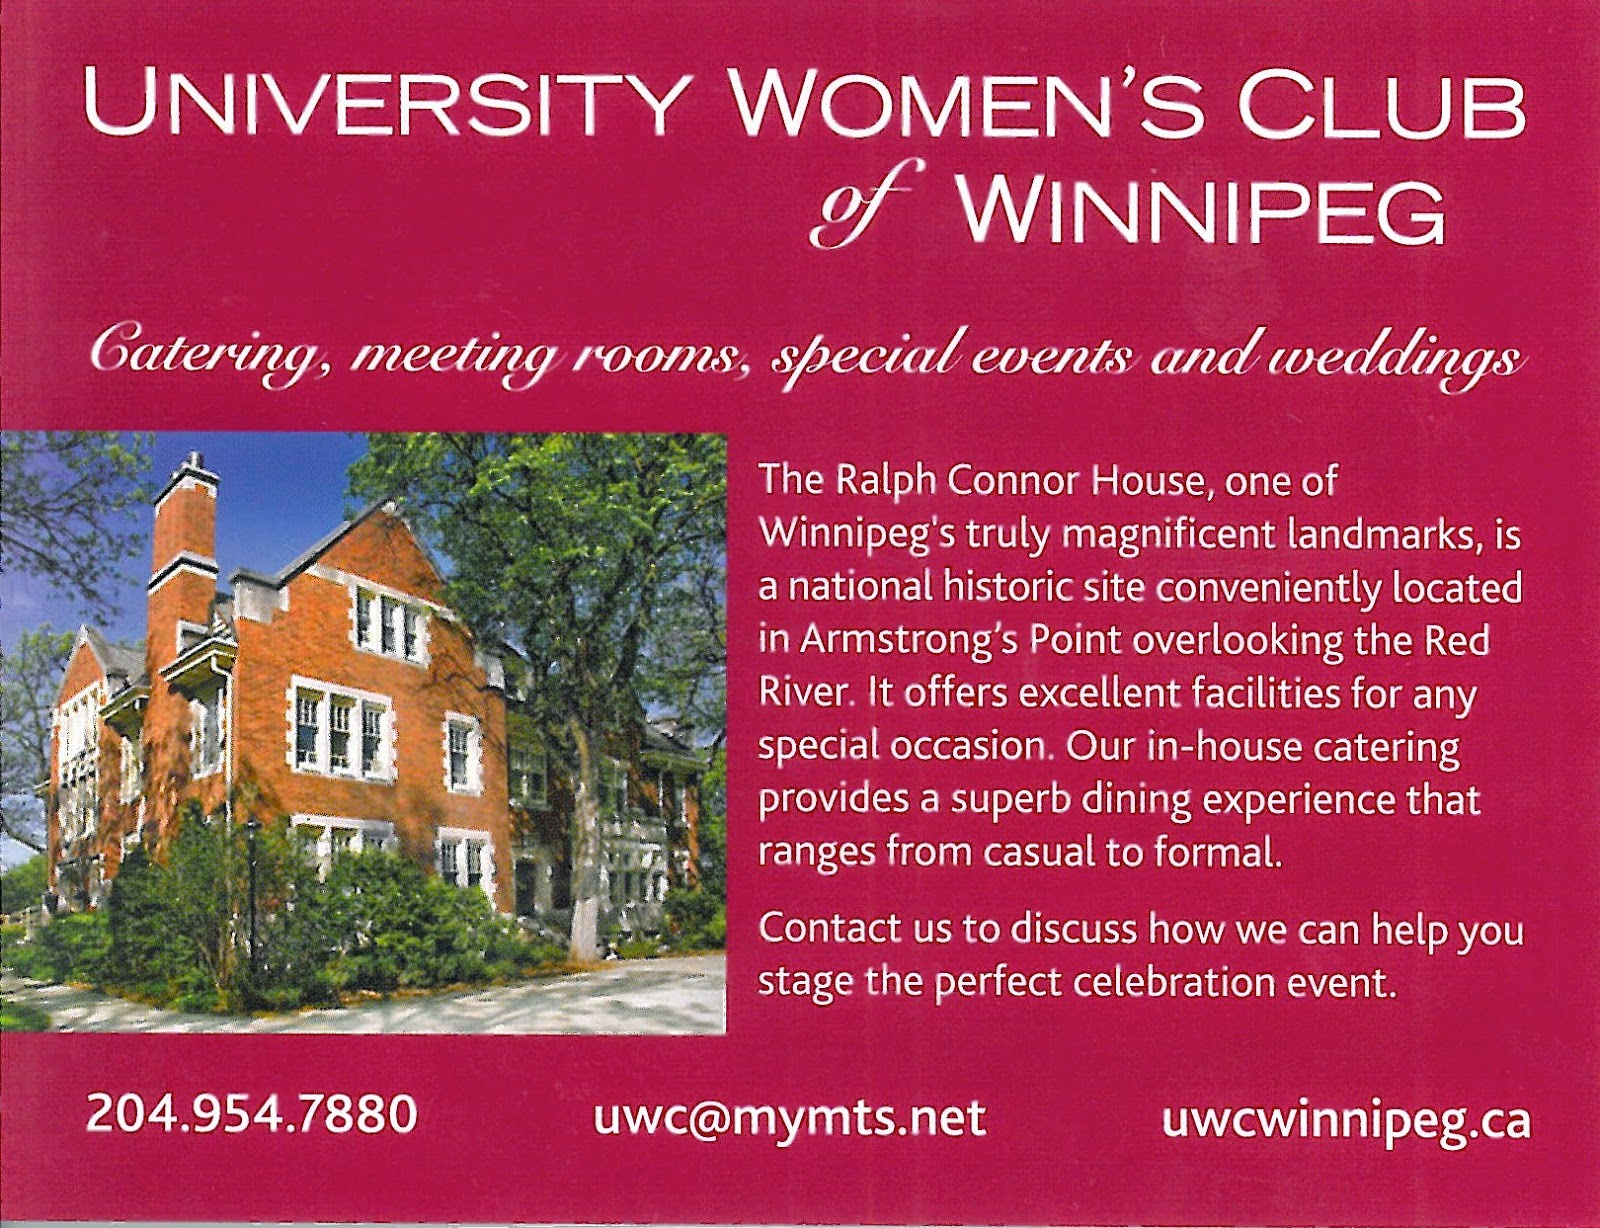 University Women's Club of Winnipeg